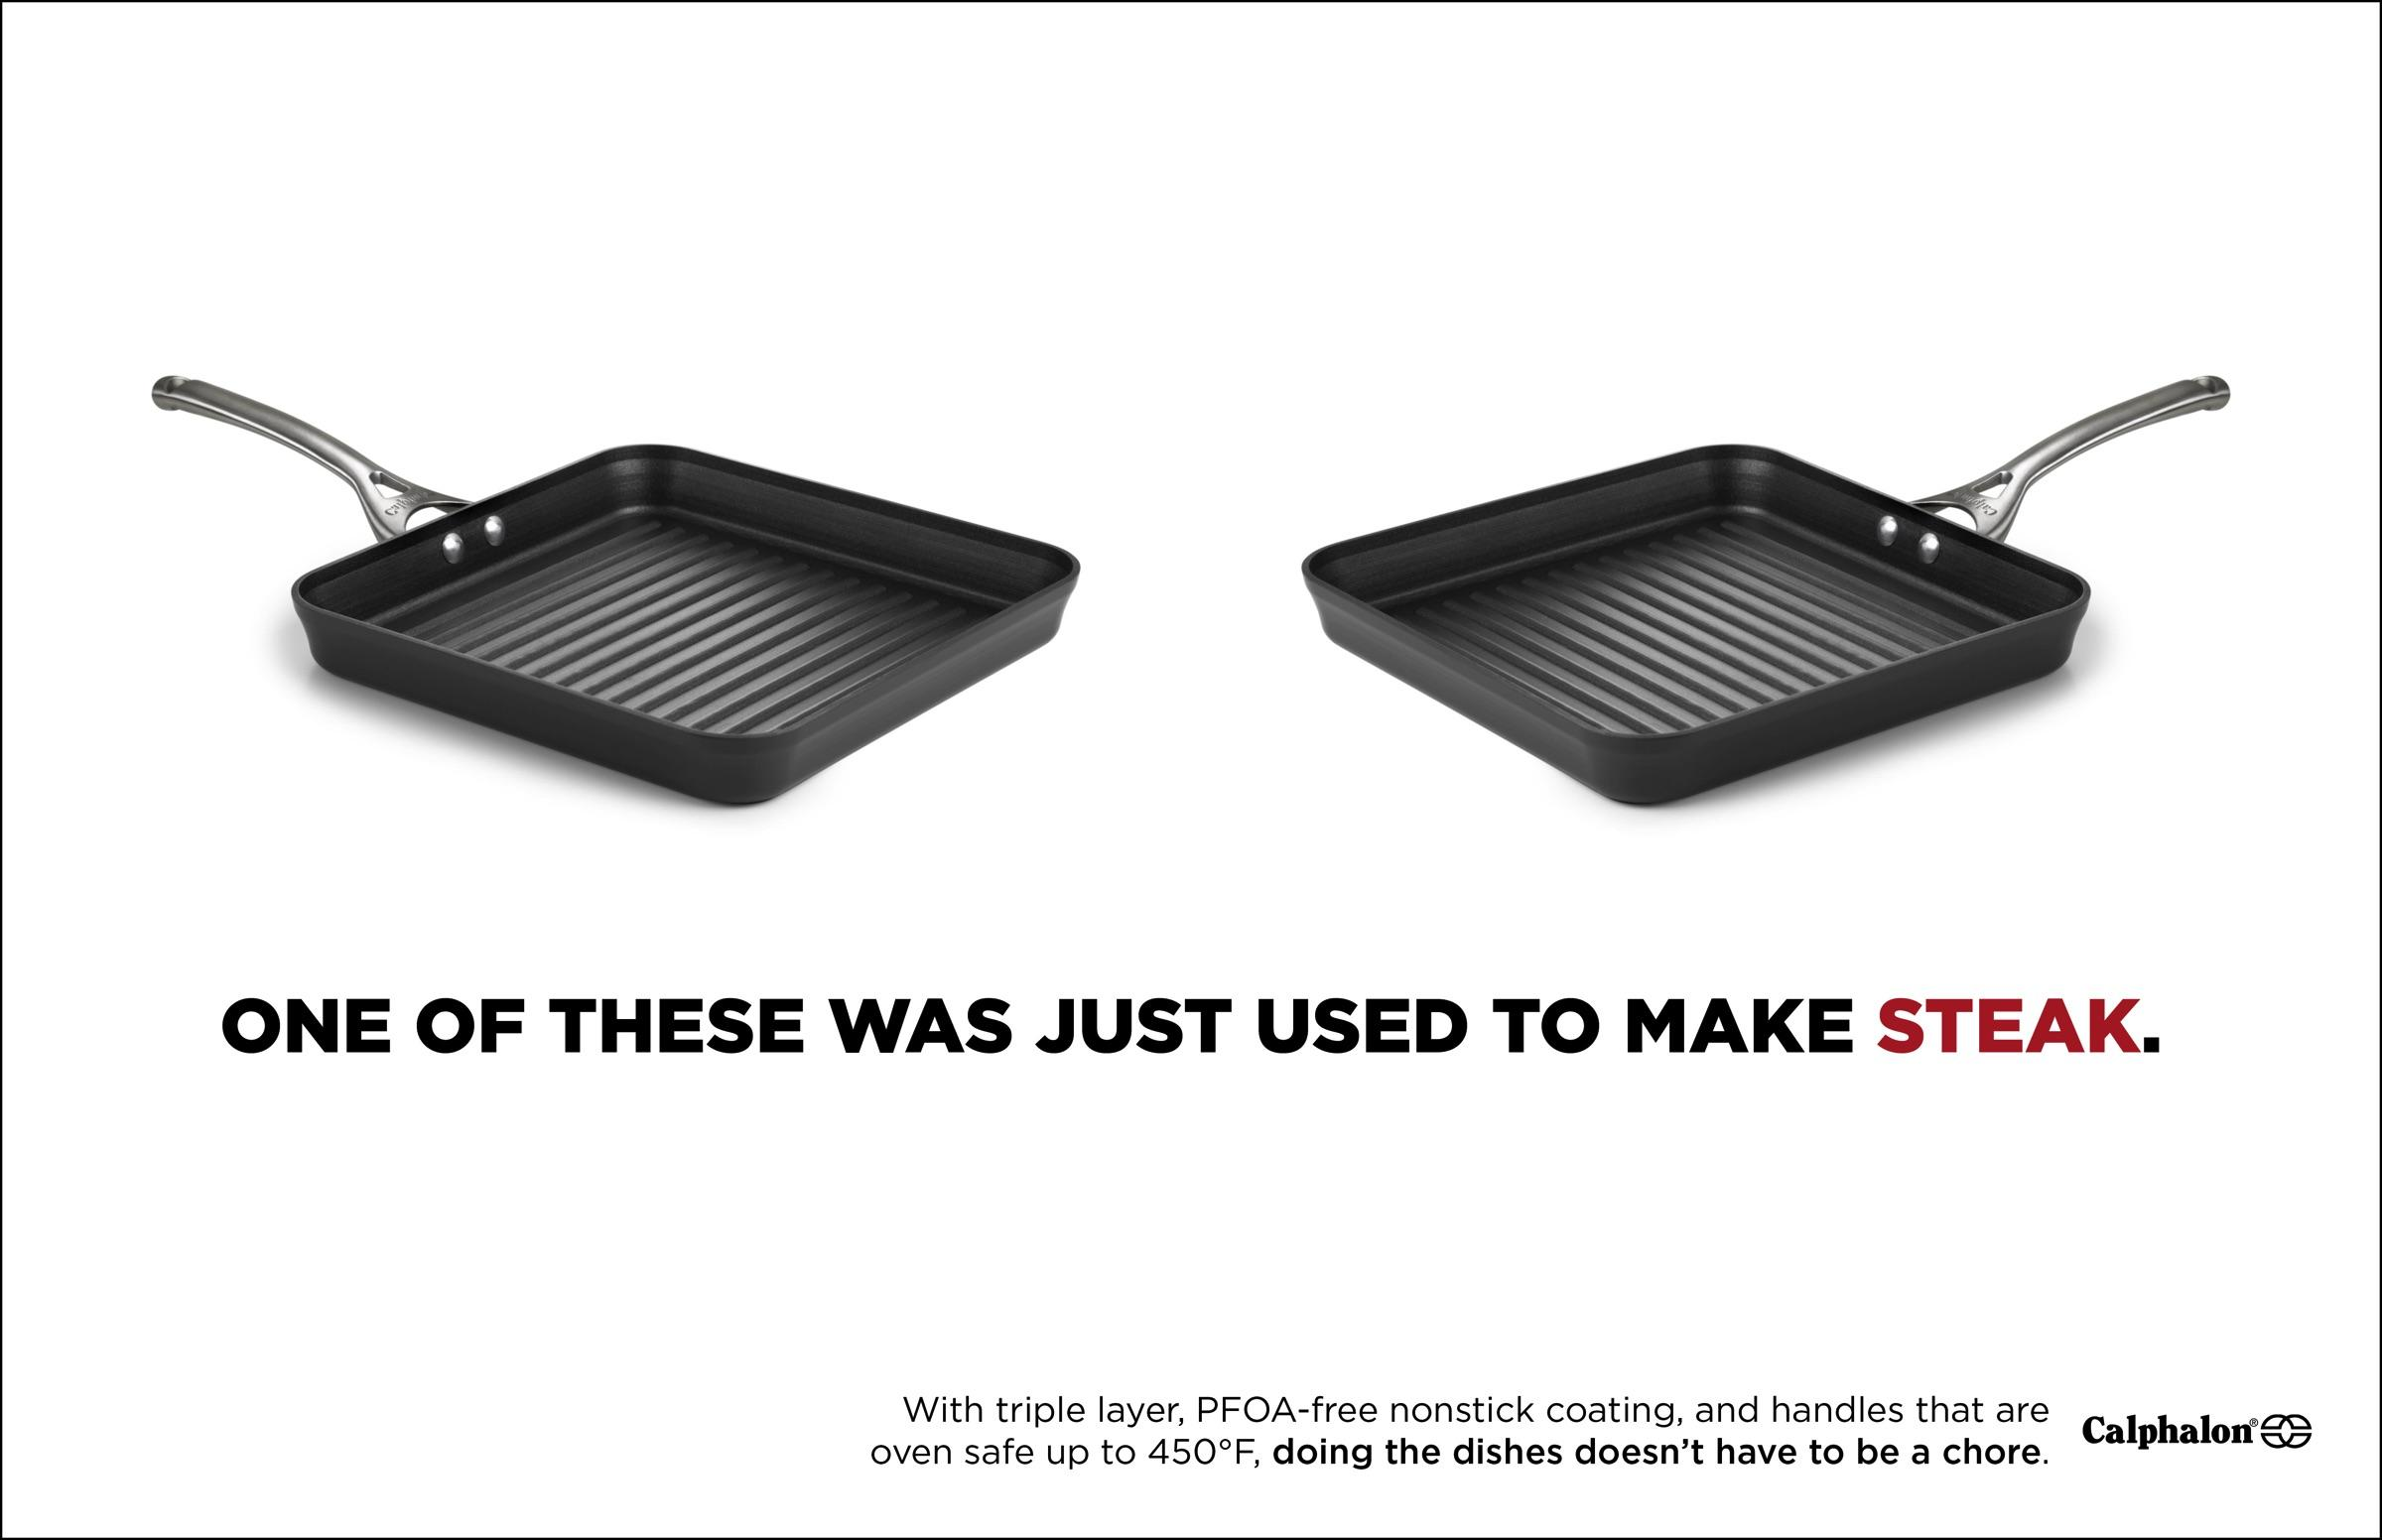 Calphalon Print Ad - Can't Tell The Difference - Steak